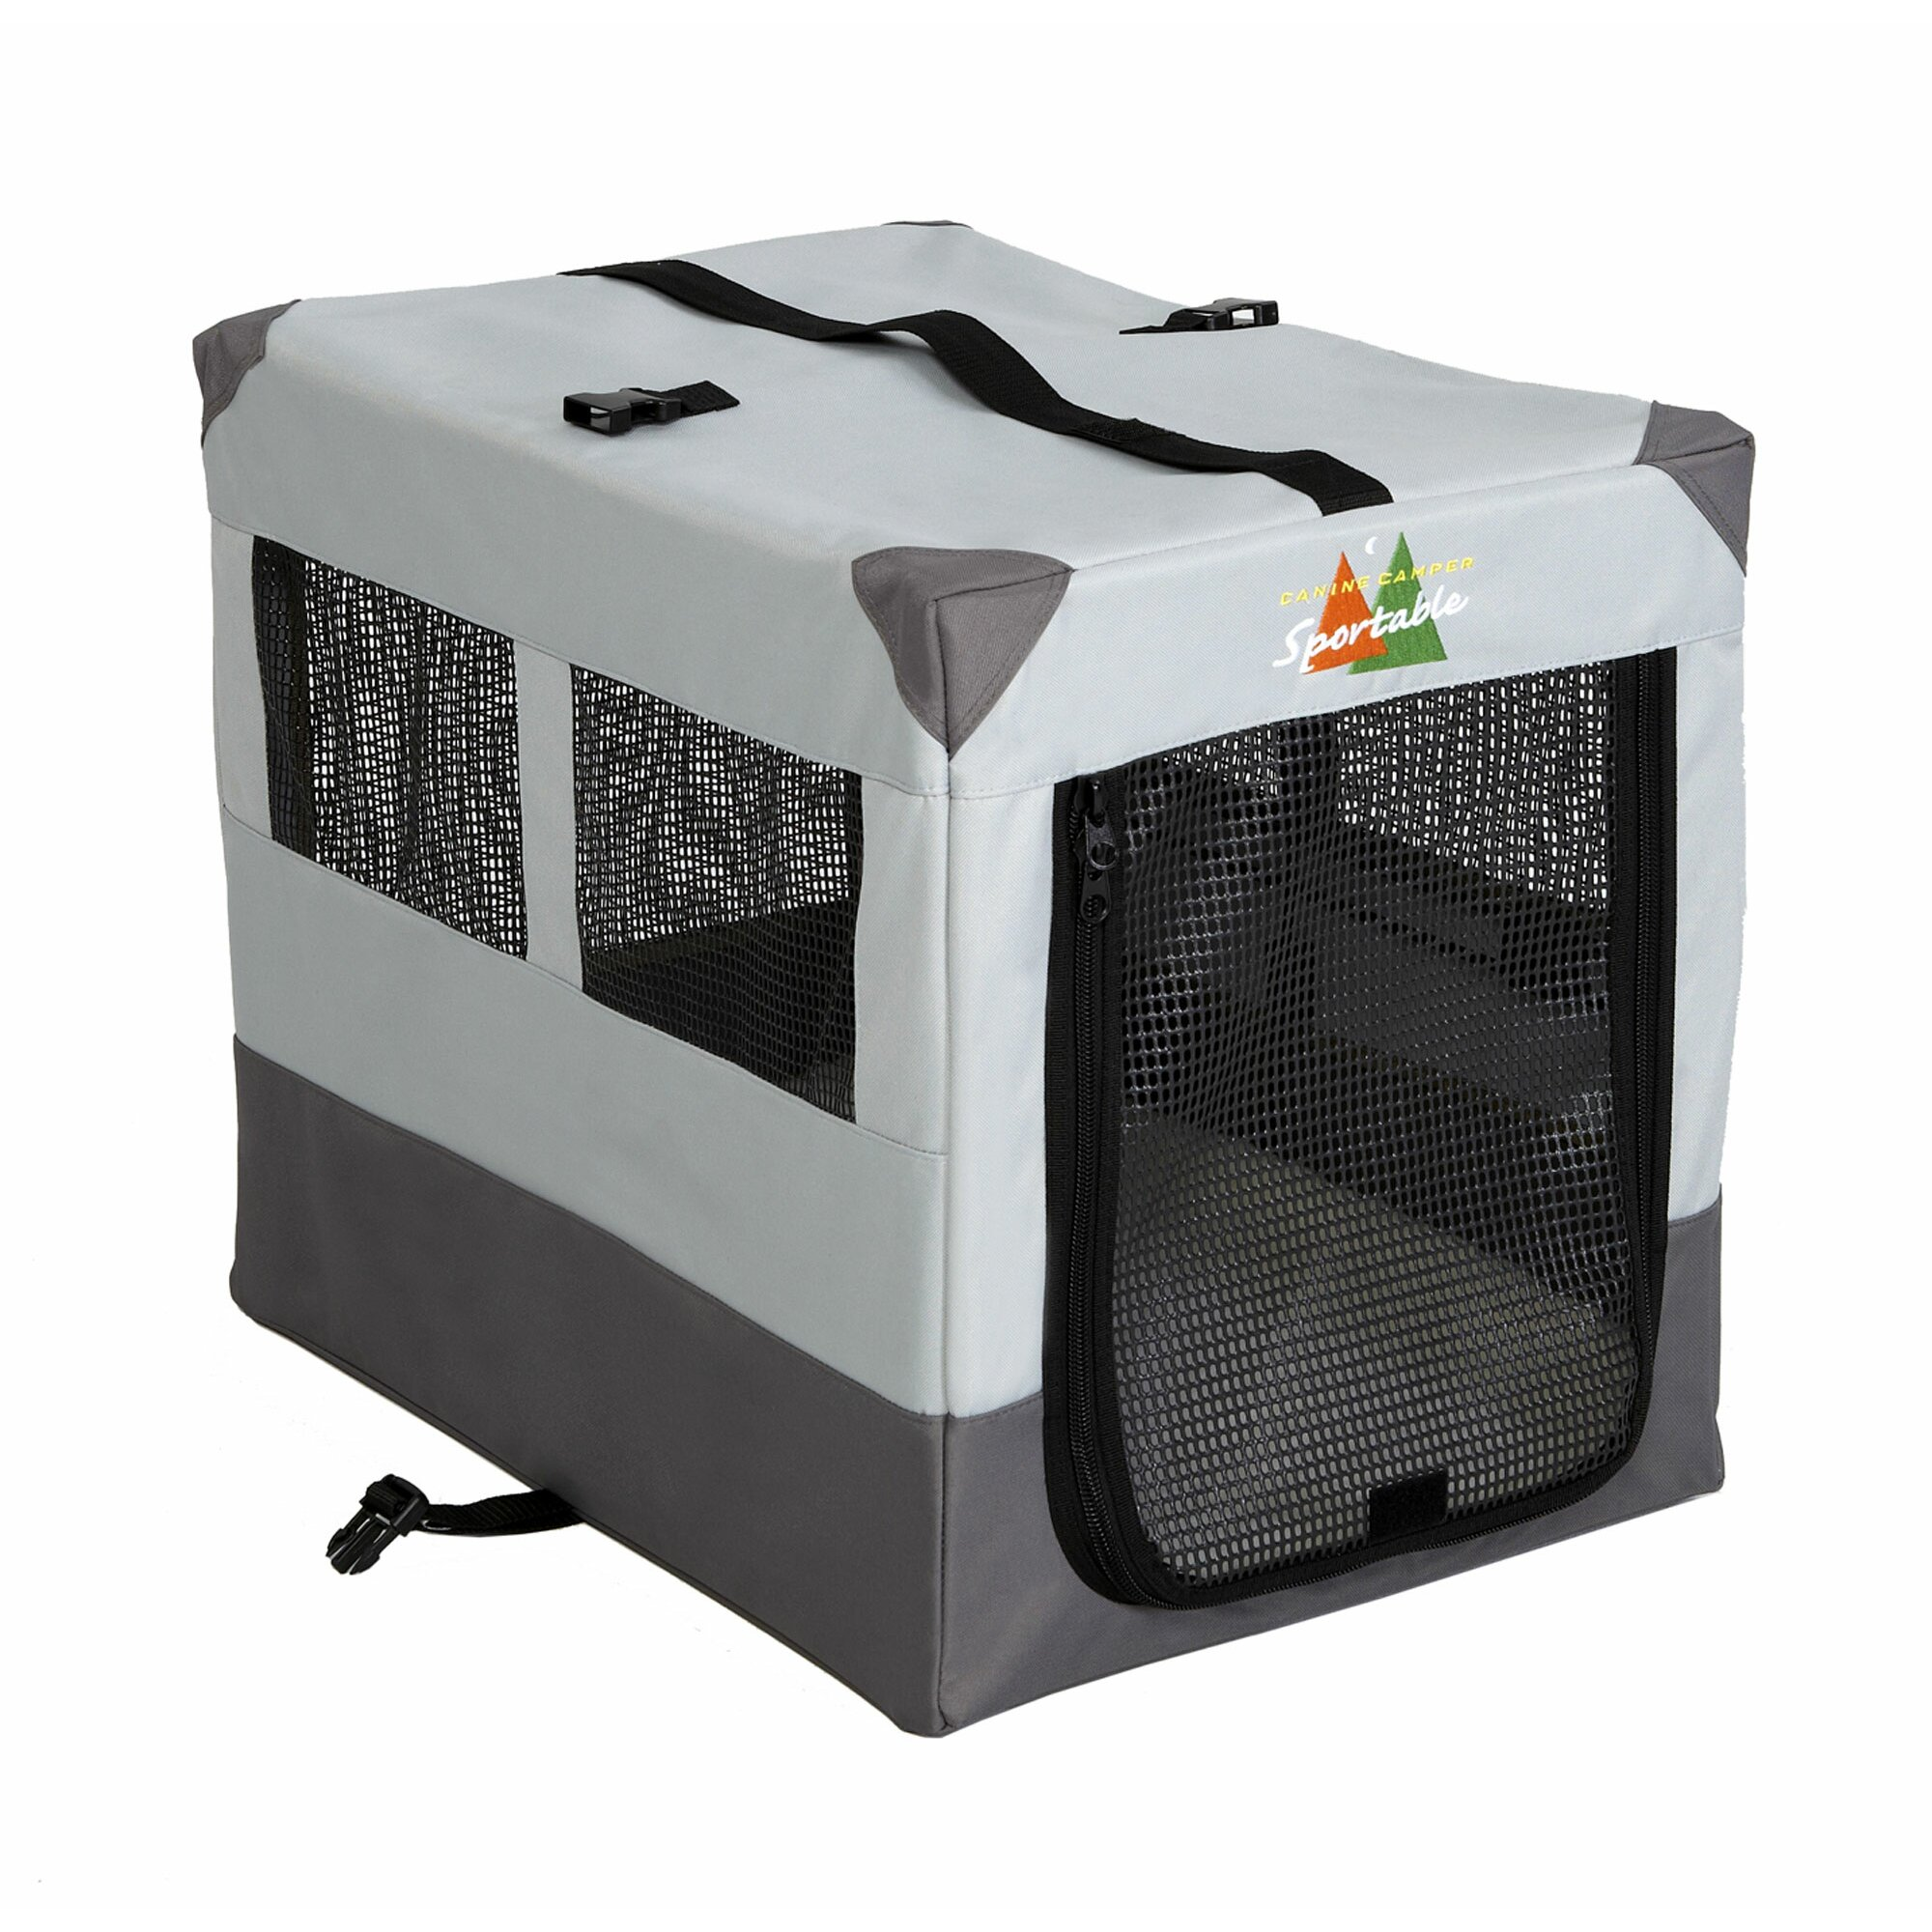 Midwest homes for pets canine camper sportable tent pet for Table pliante walmart